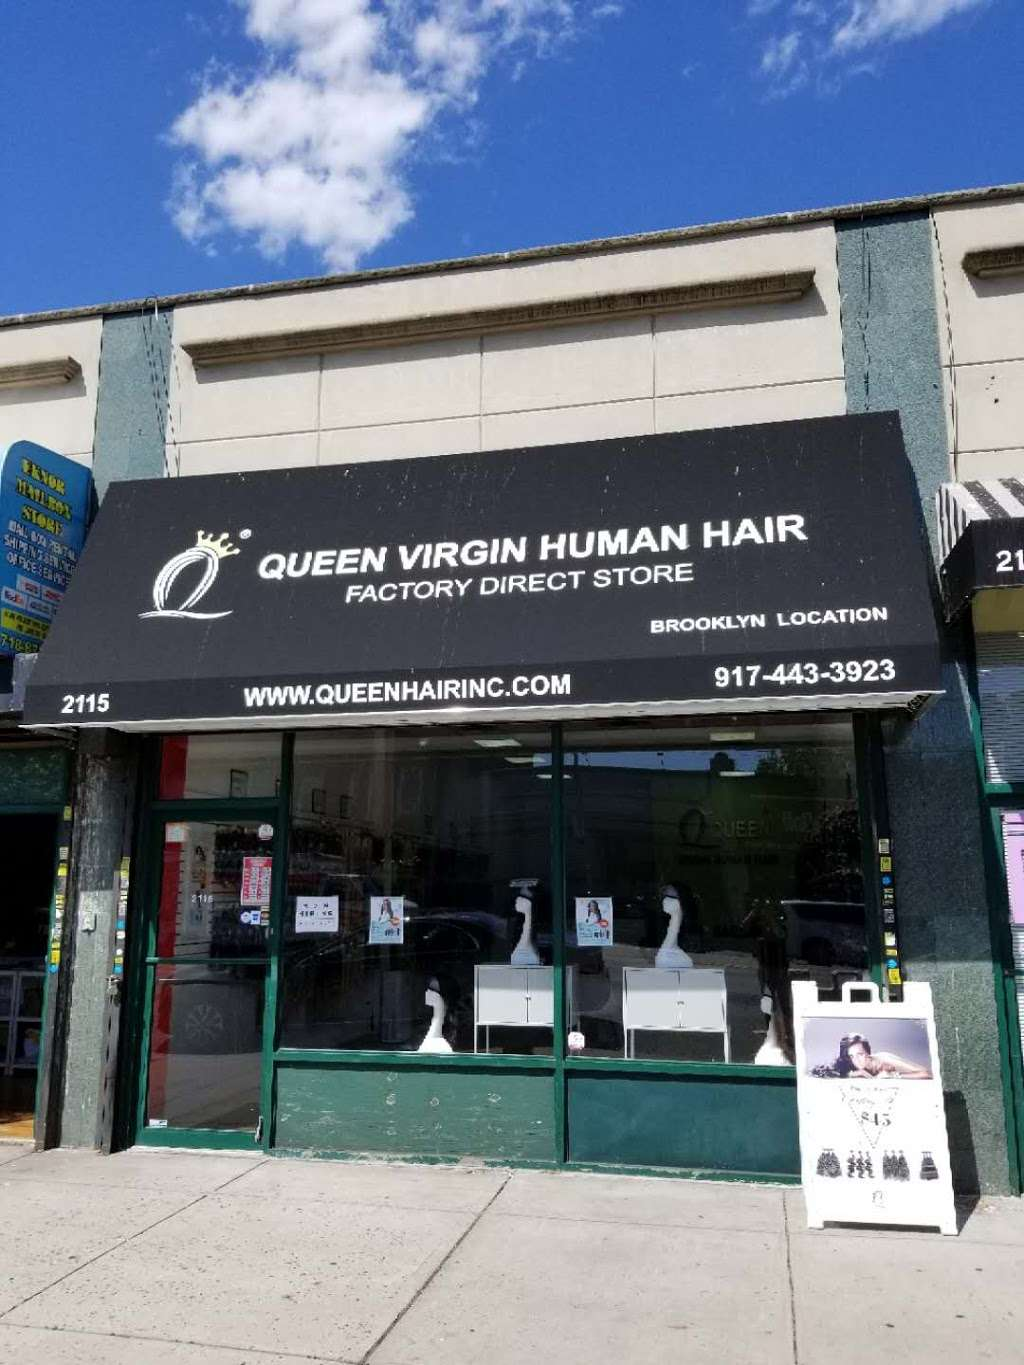 Queen virgin human hair Brooklyn Store - store  | Photo 9 of 10 | Address: 2115 Flatbush Ave, Brooklyn, NY 11234, USA | Phone: (917) 443-3923